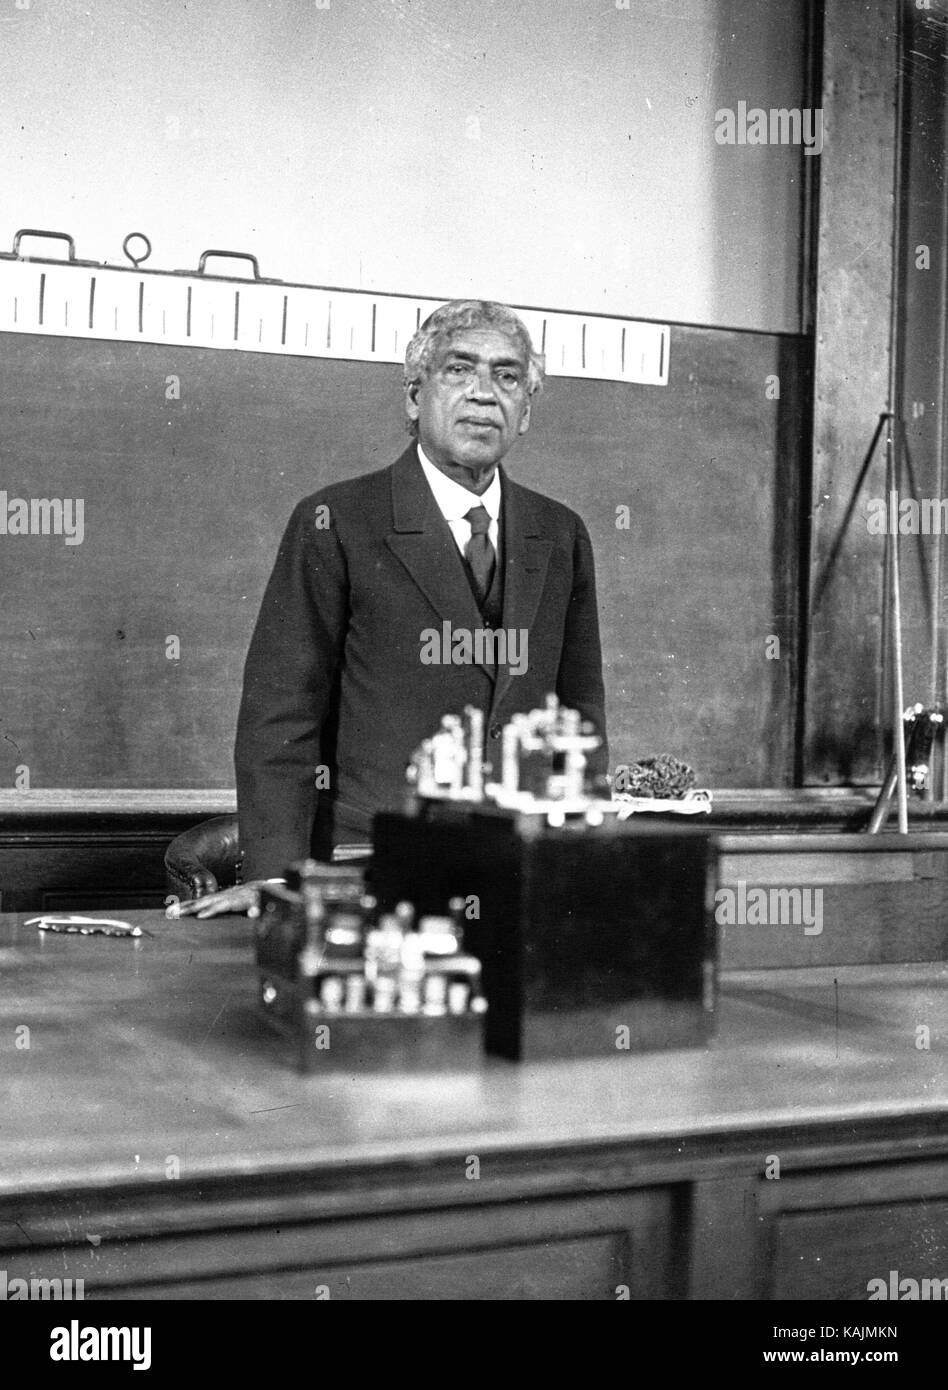 JAGADISH CHANDRA BOSE (1858-1937) Begali scientist giving a lecture on the nervous system of plants at the Sorbonne, - Stock Image